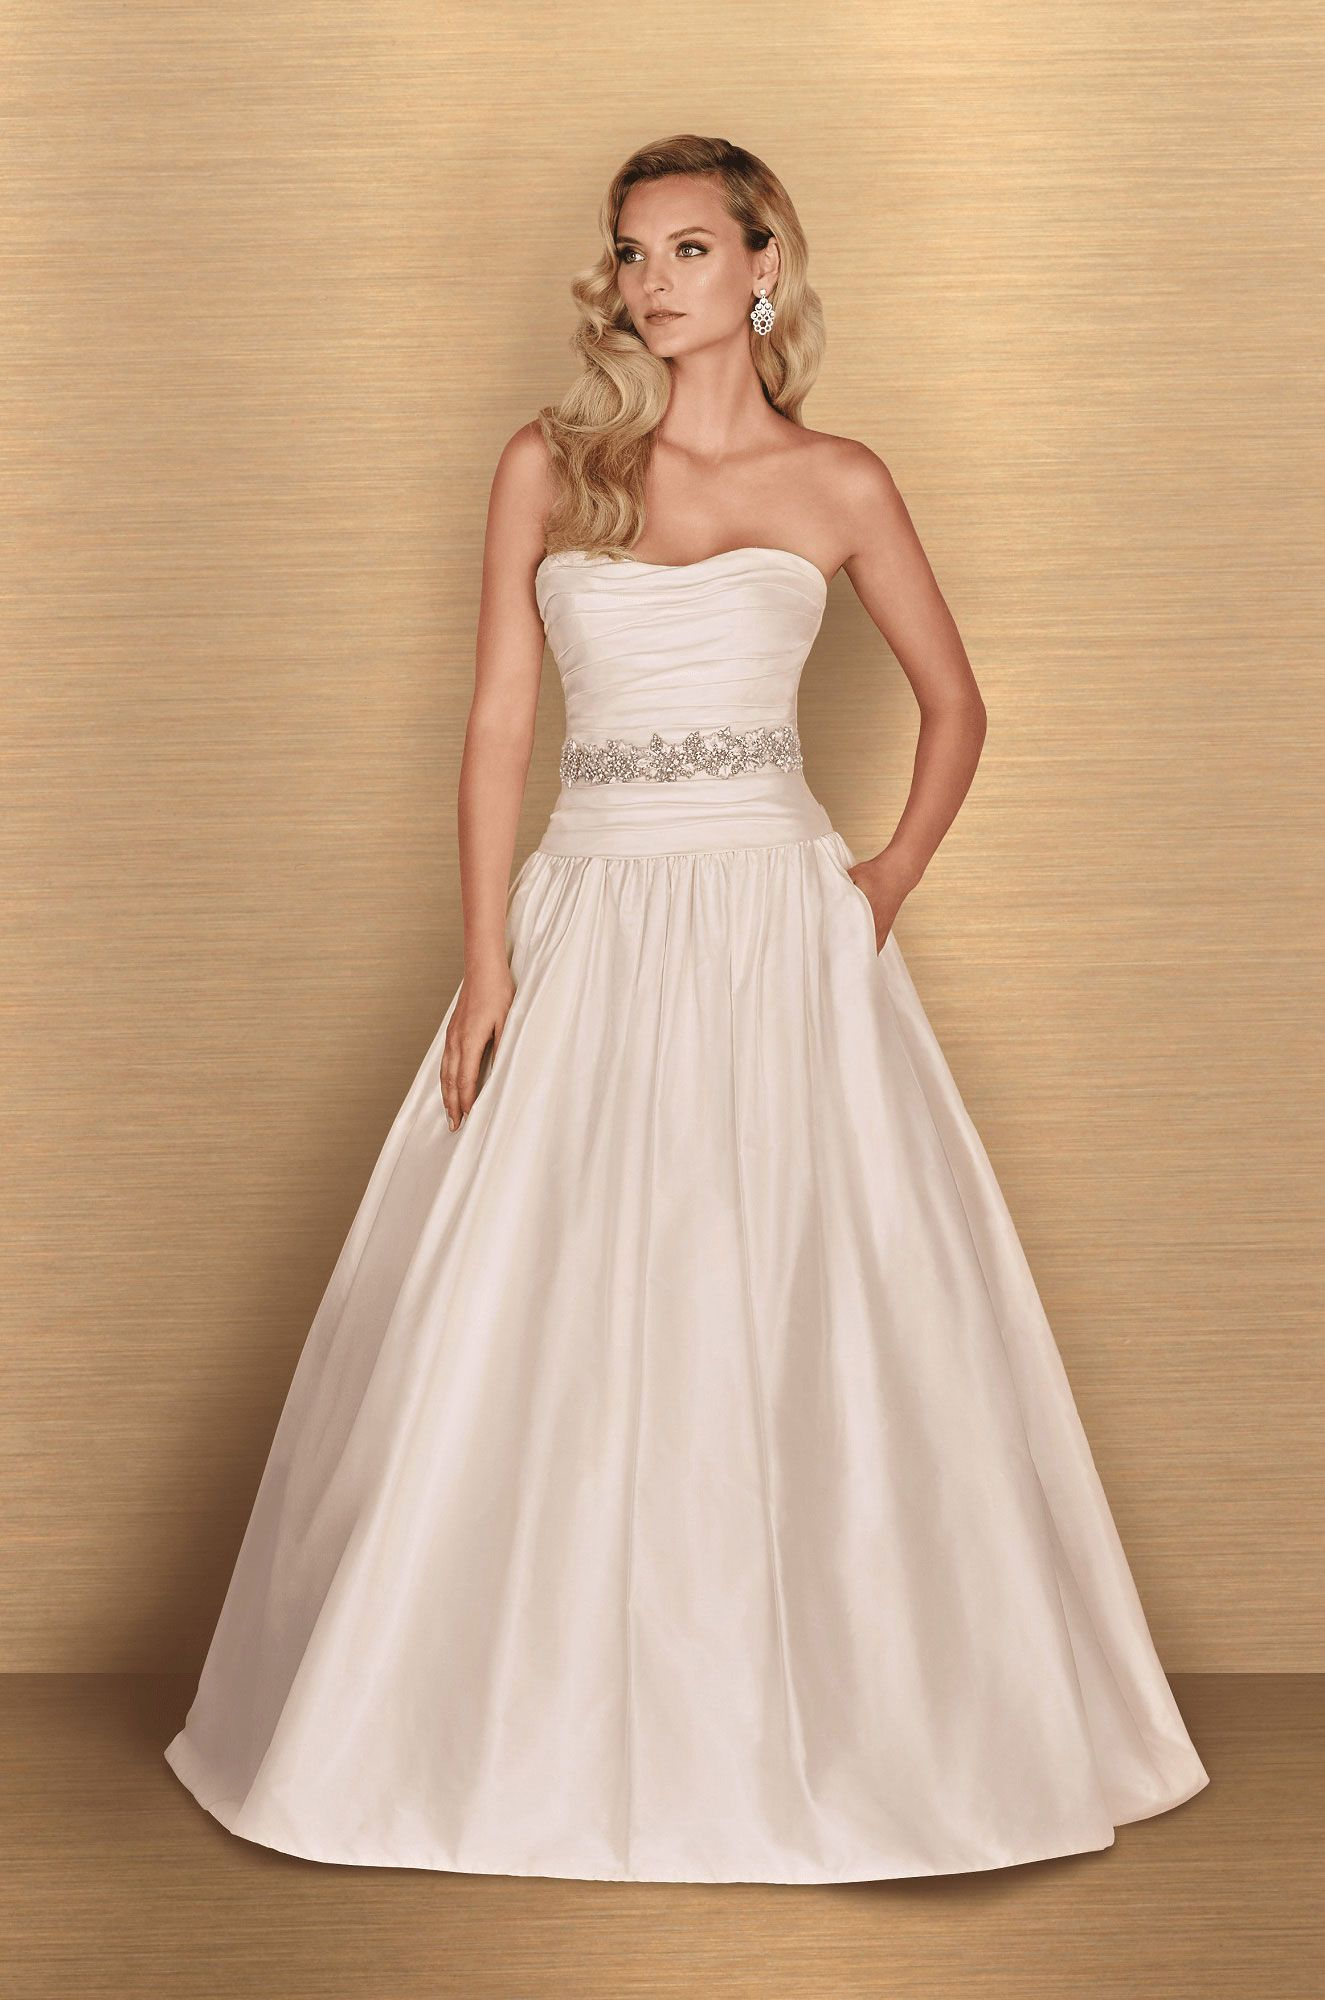 Drop Waist Wedding Dress Style #4654 in 2019 | Wedding